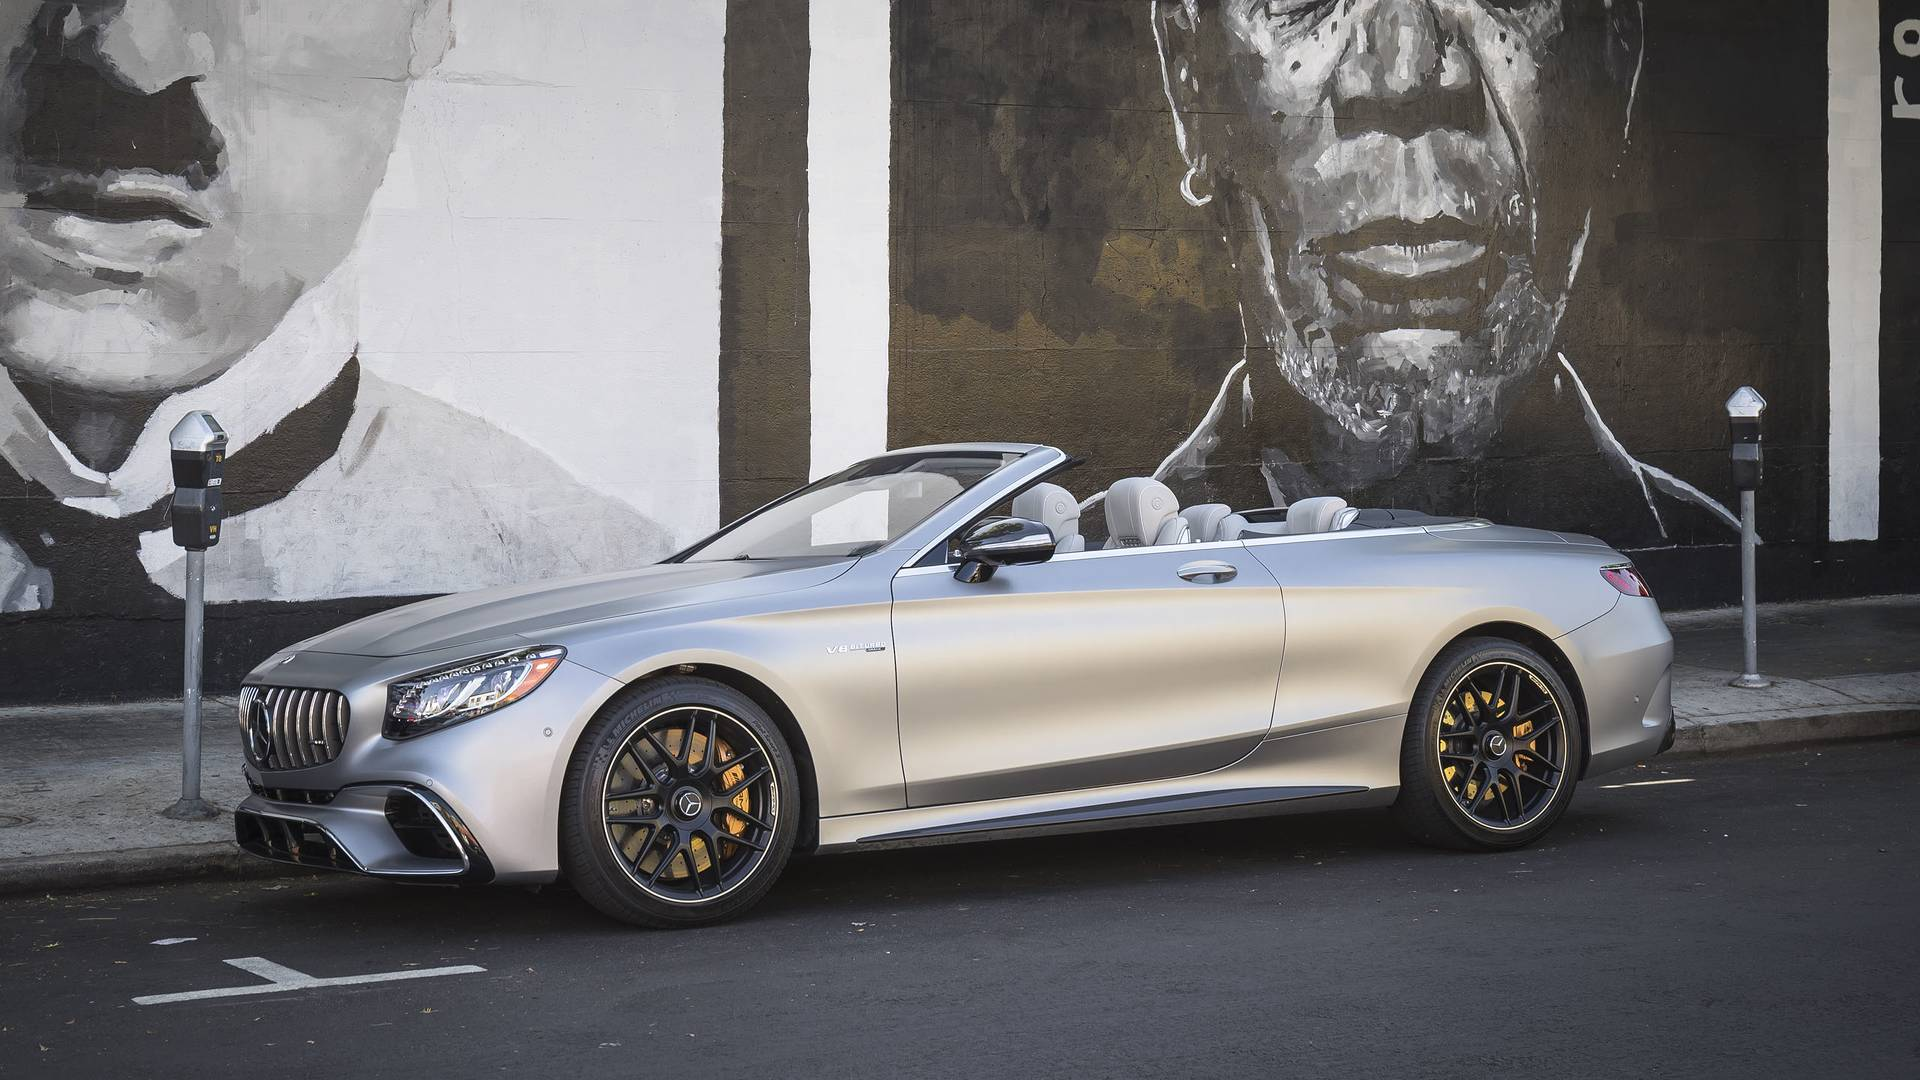 2018 Mercedes Amg S63 Cabriolet Review Sunshine On Fast